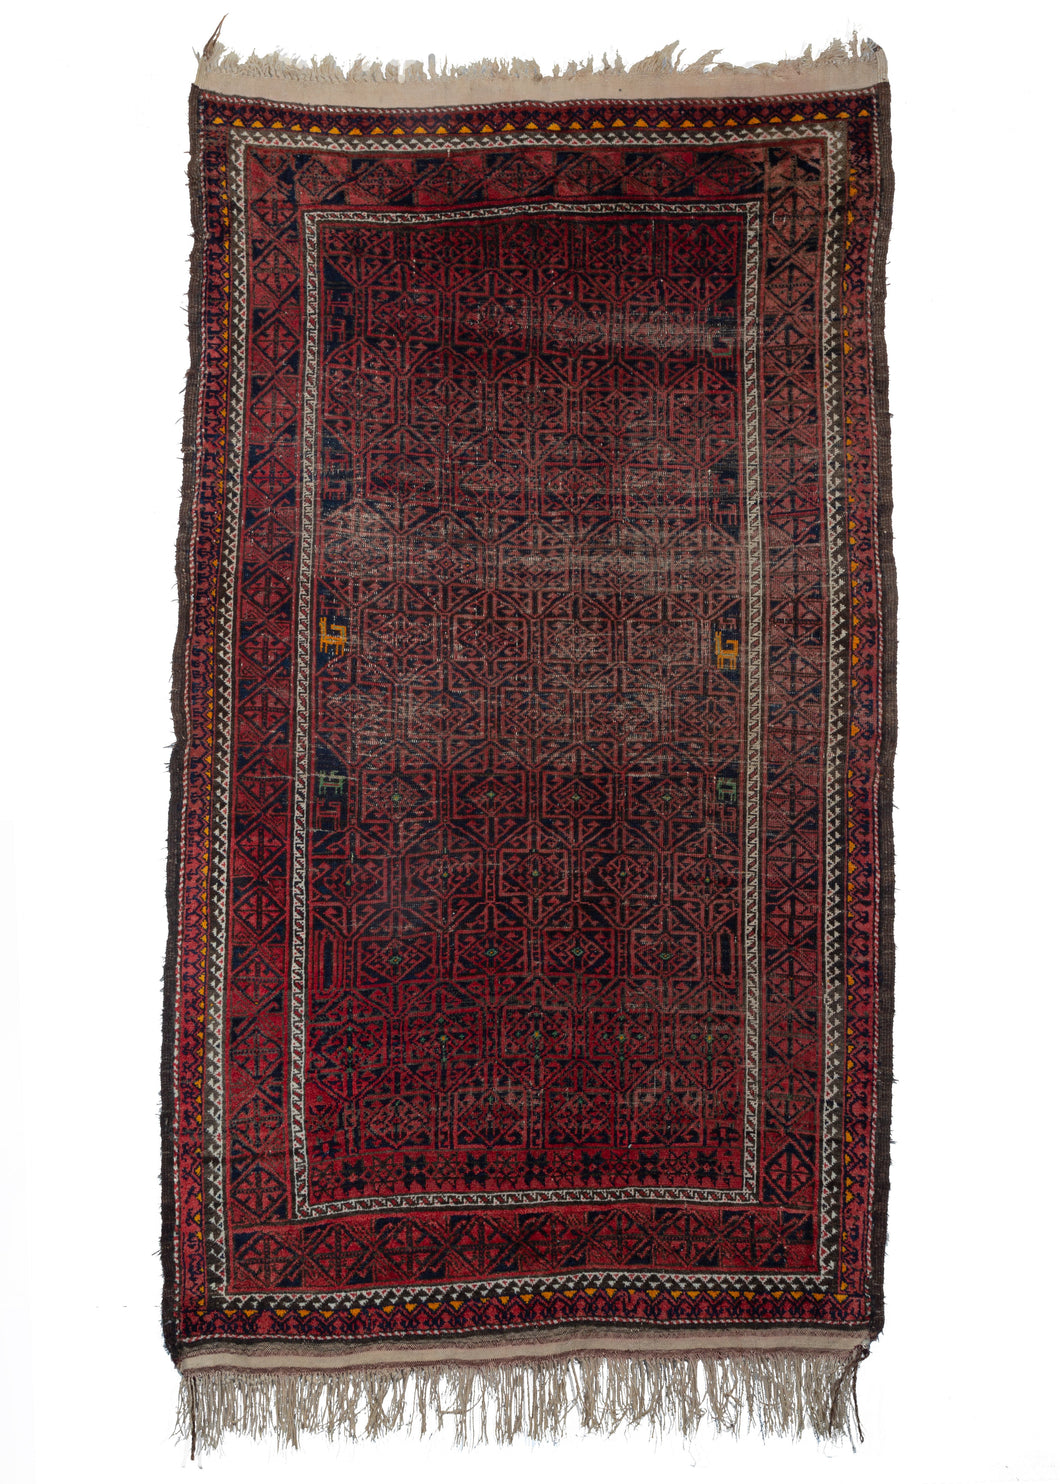 Mid Century Afghani Baluch Area Rug with bright red design on black field and little animals in orange and green